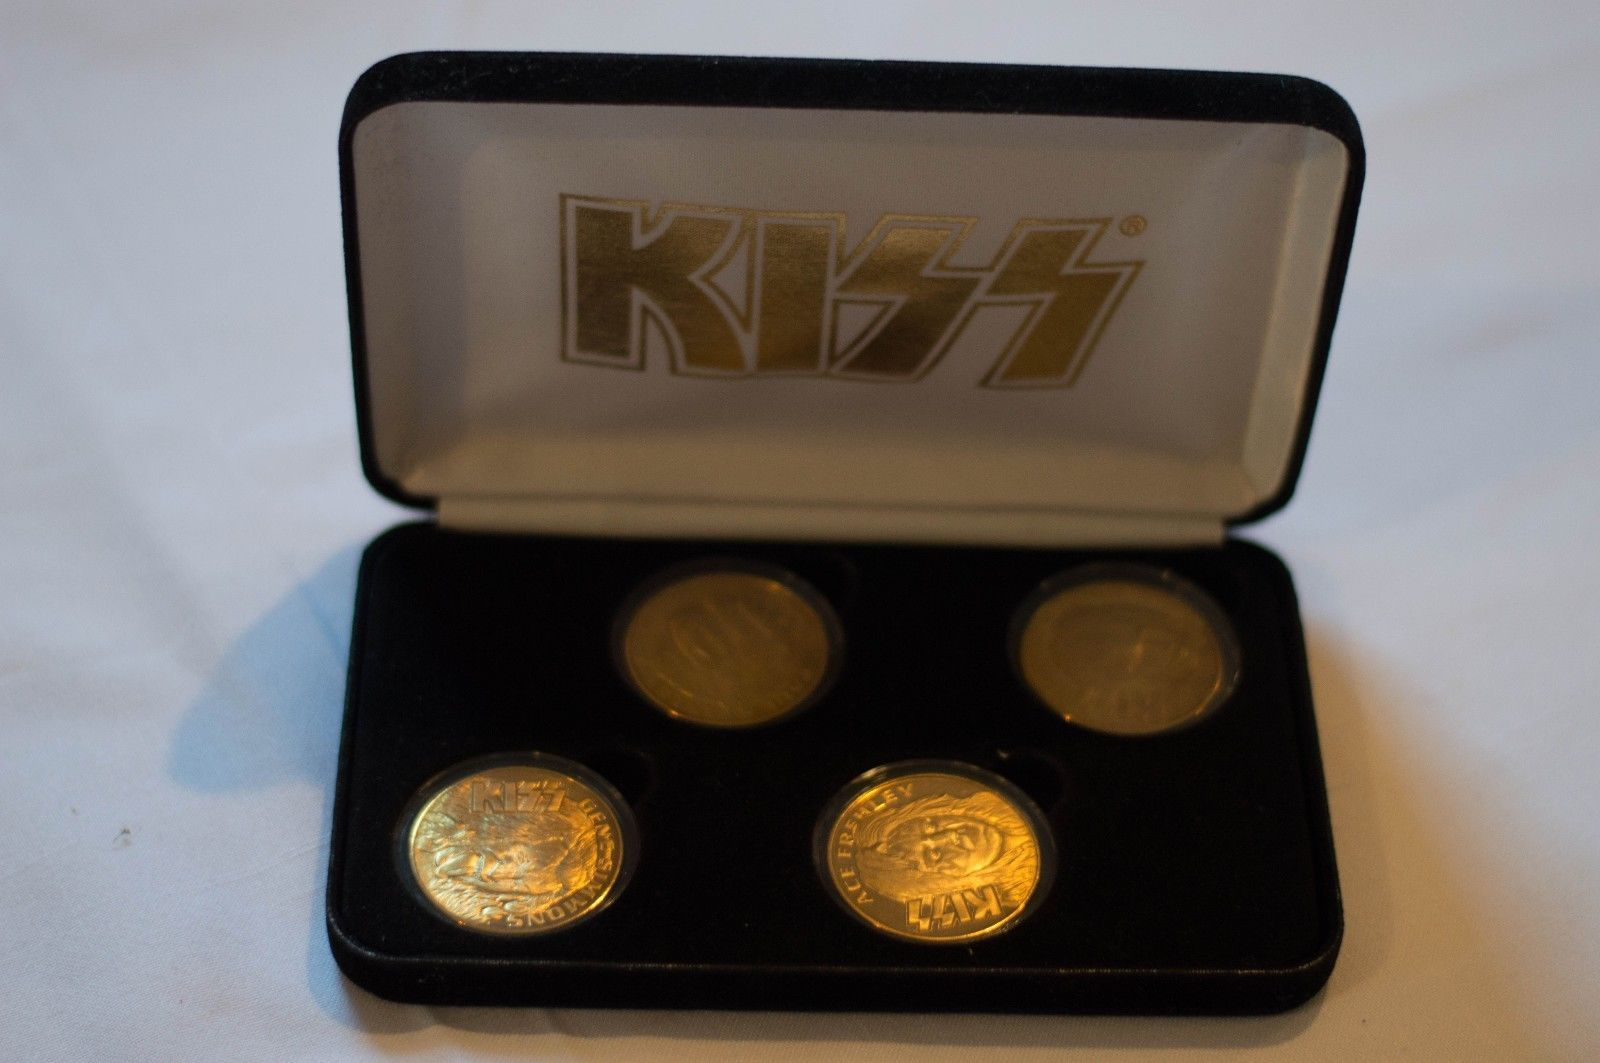 Primary image for KISS-GOLD- ALIVE COMMEMORATIVE COINS